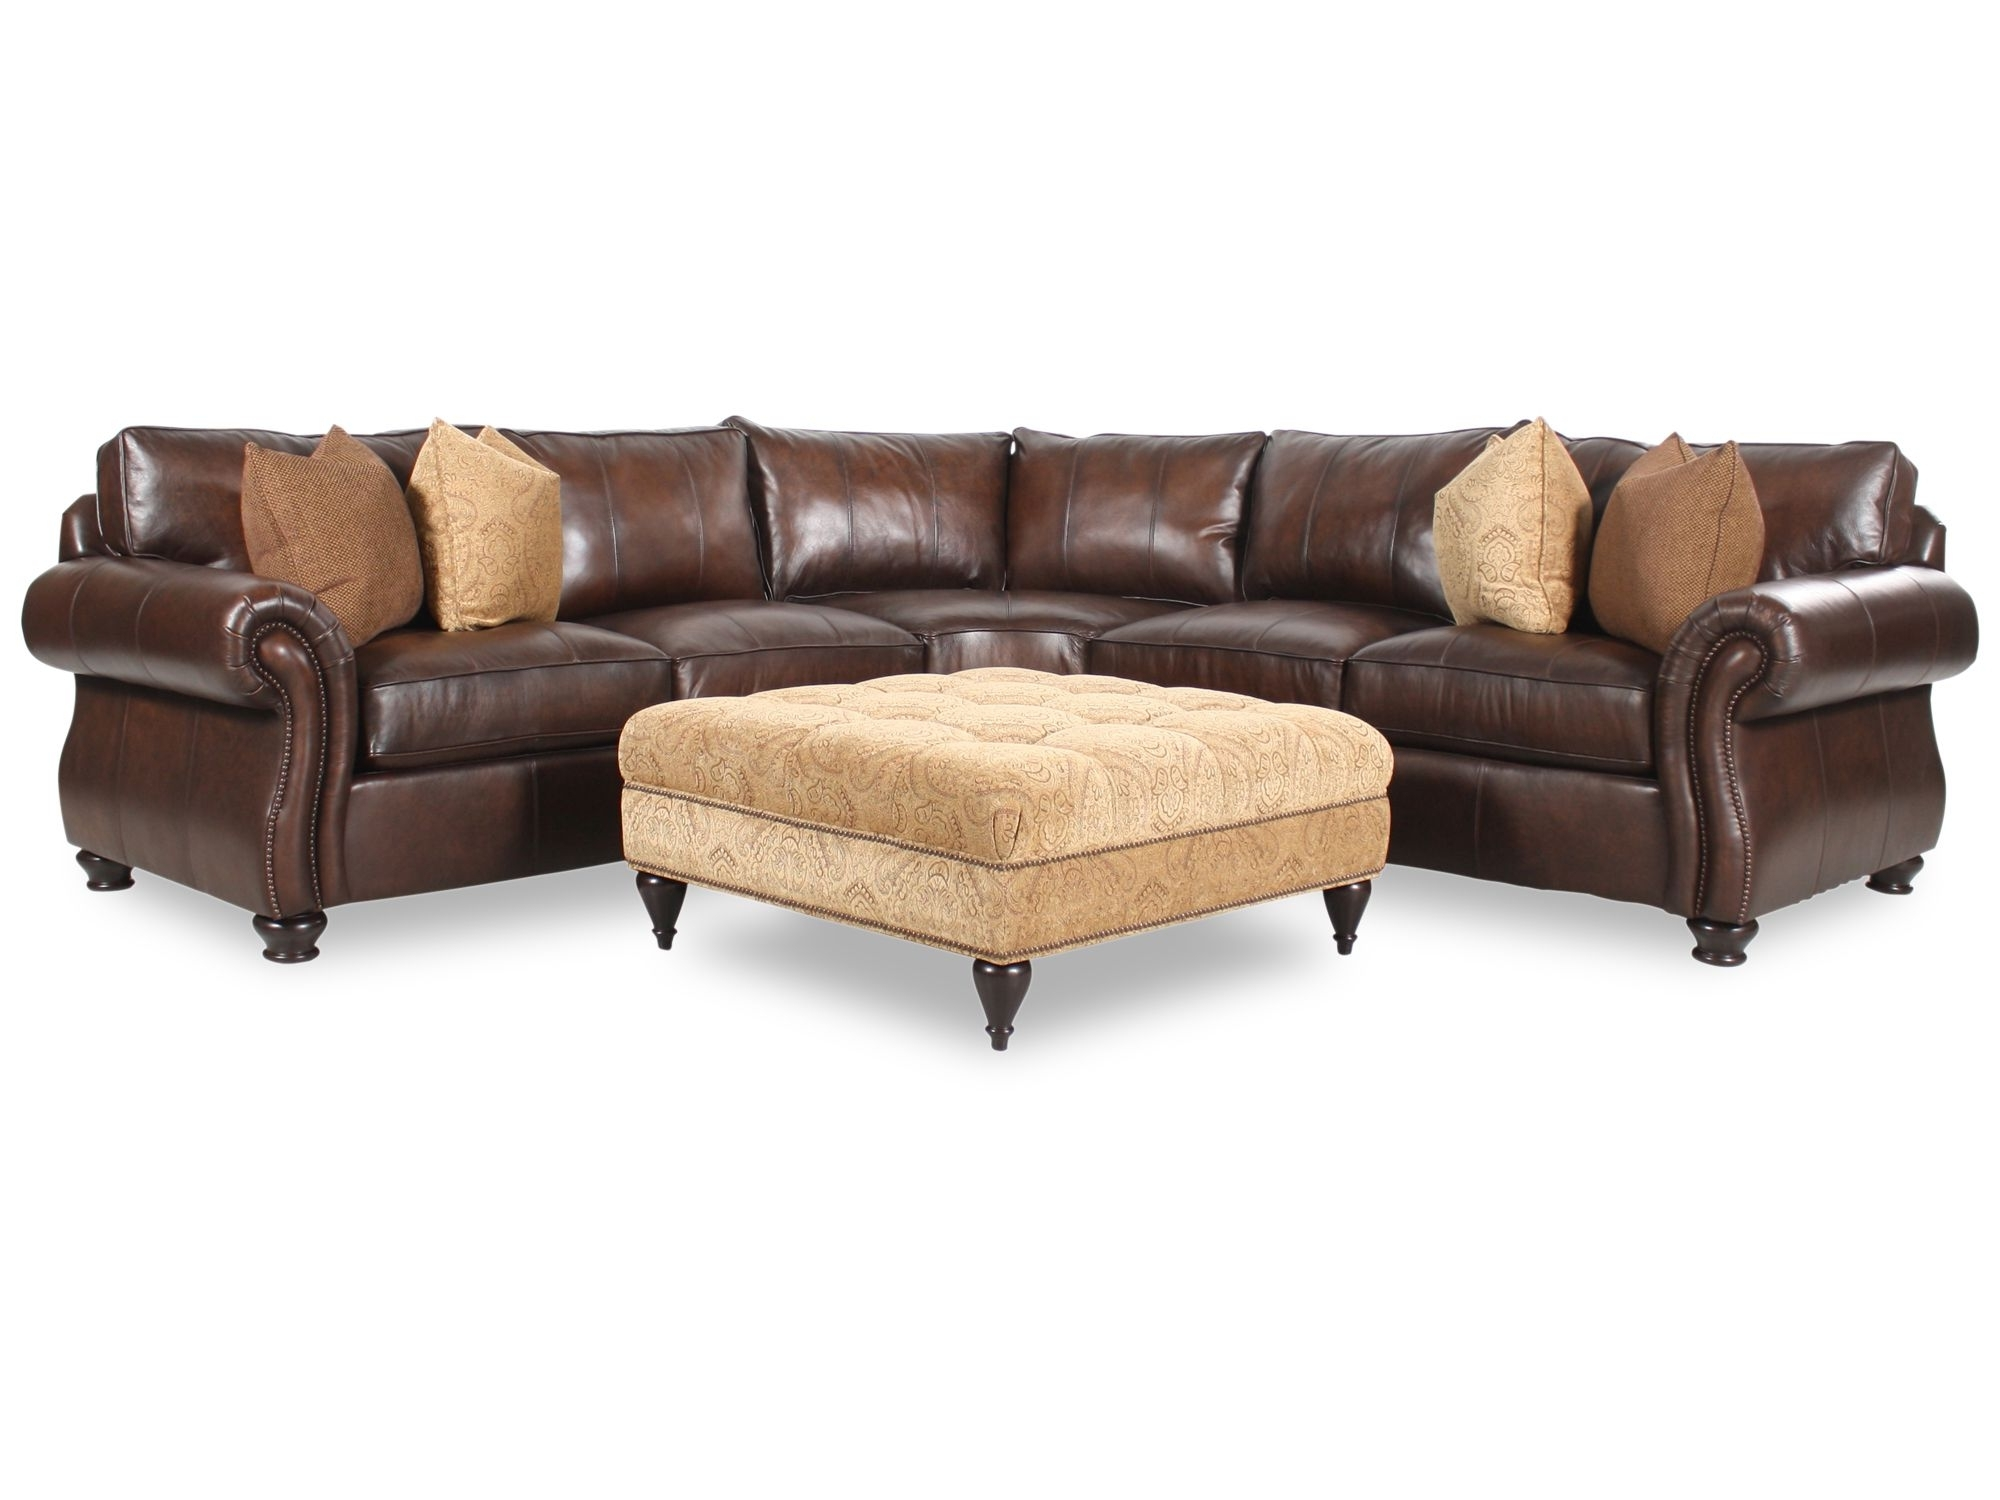 Leather Sectional Sofas With Ottoman Regarding 2019 Bernhardt Van Gogh Two Piece Leather Sectional With Square Fabric (View 9 of 20)